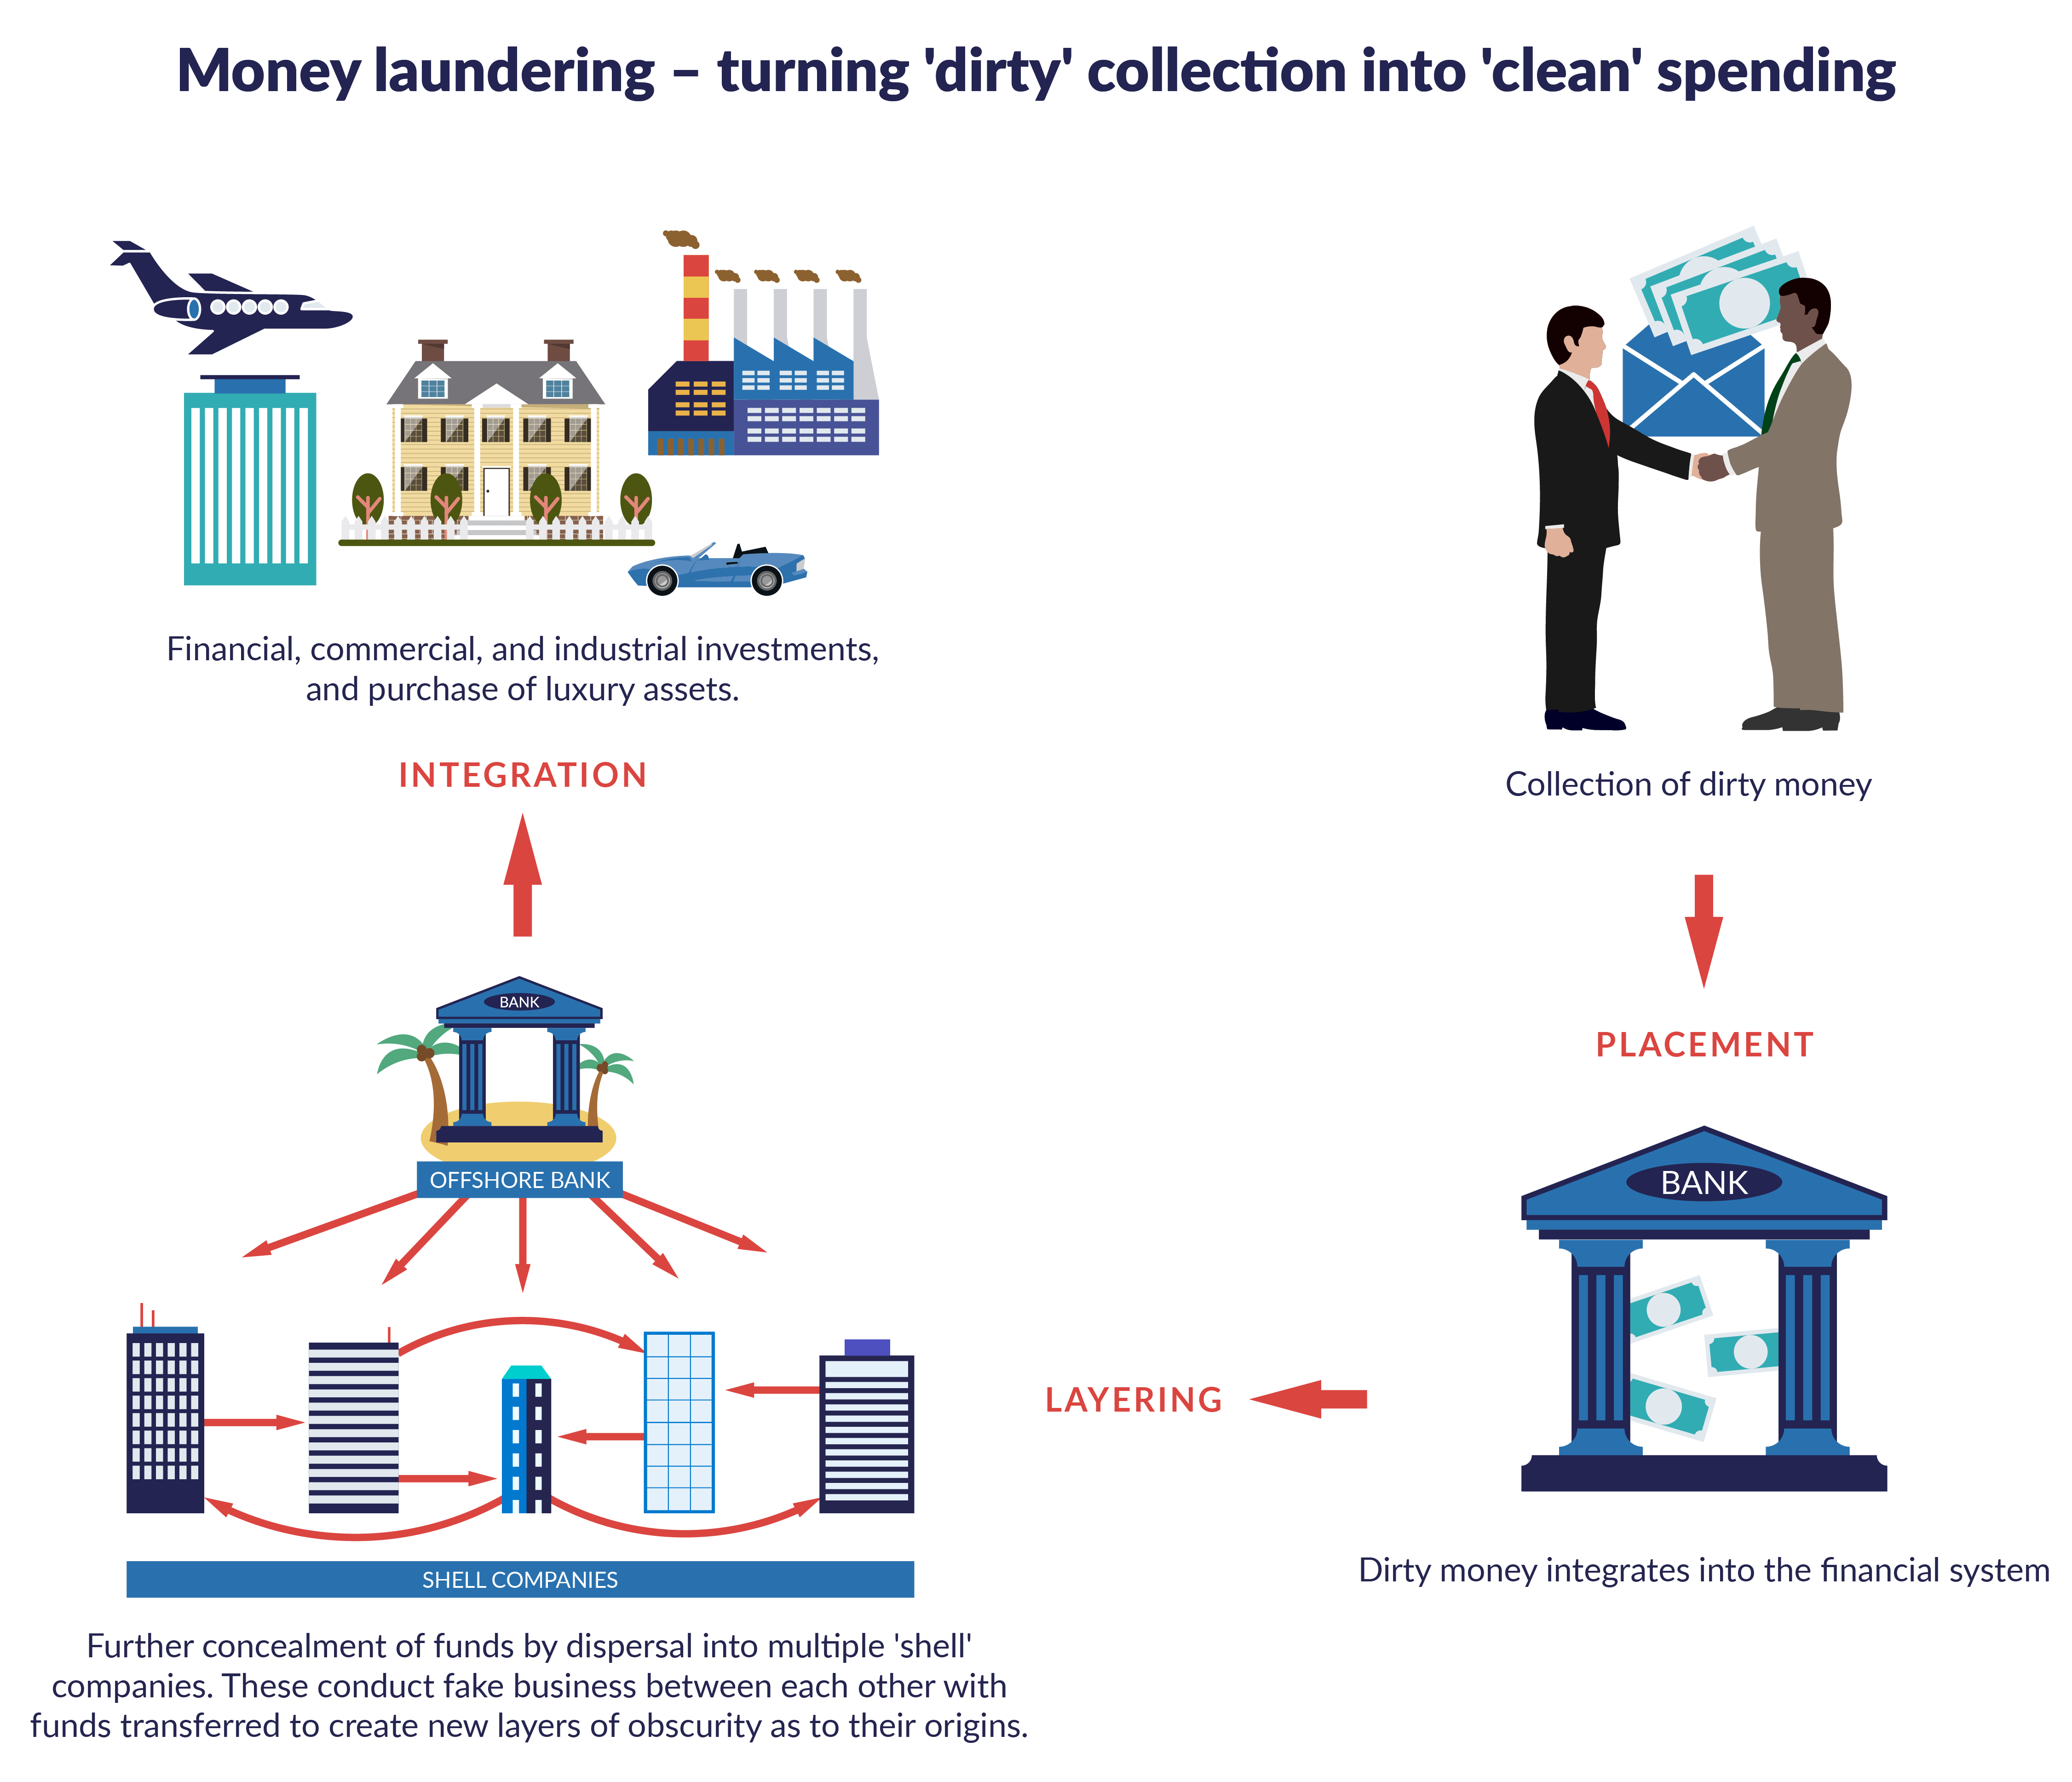 Asset recovery and illicit financial flows from a